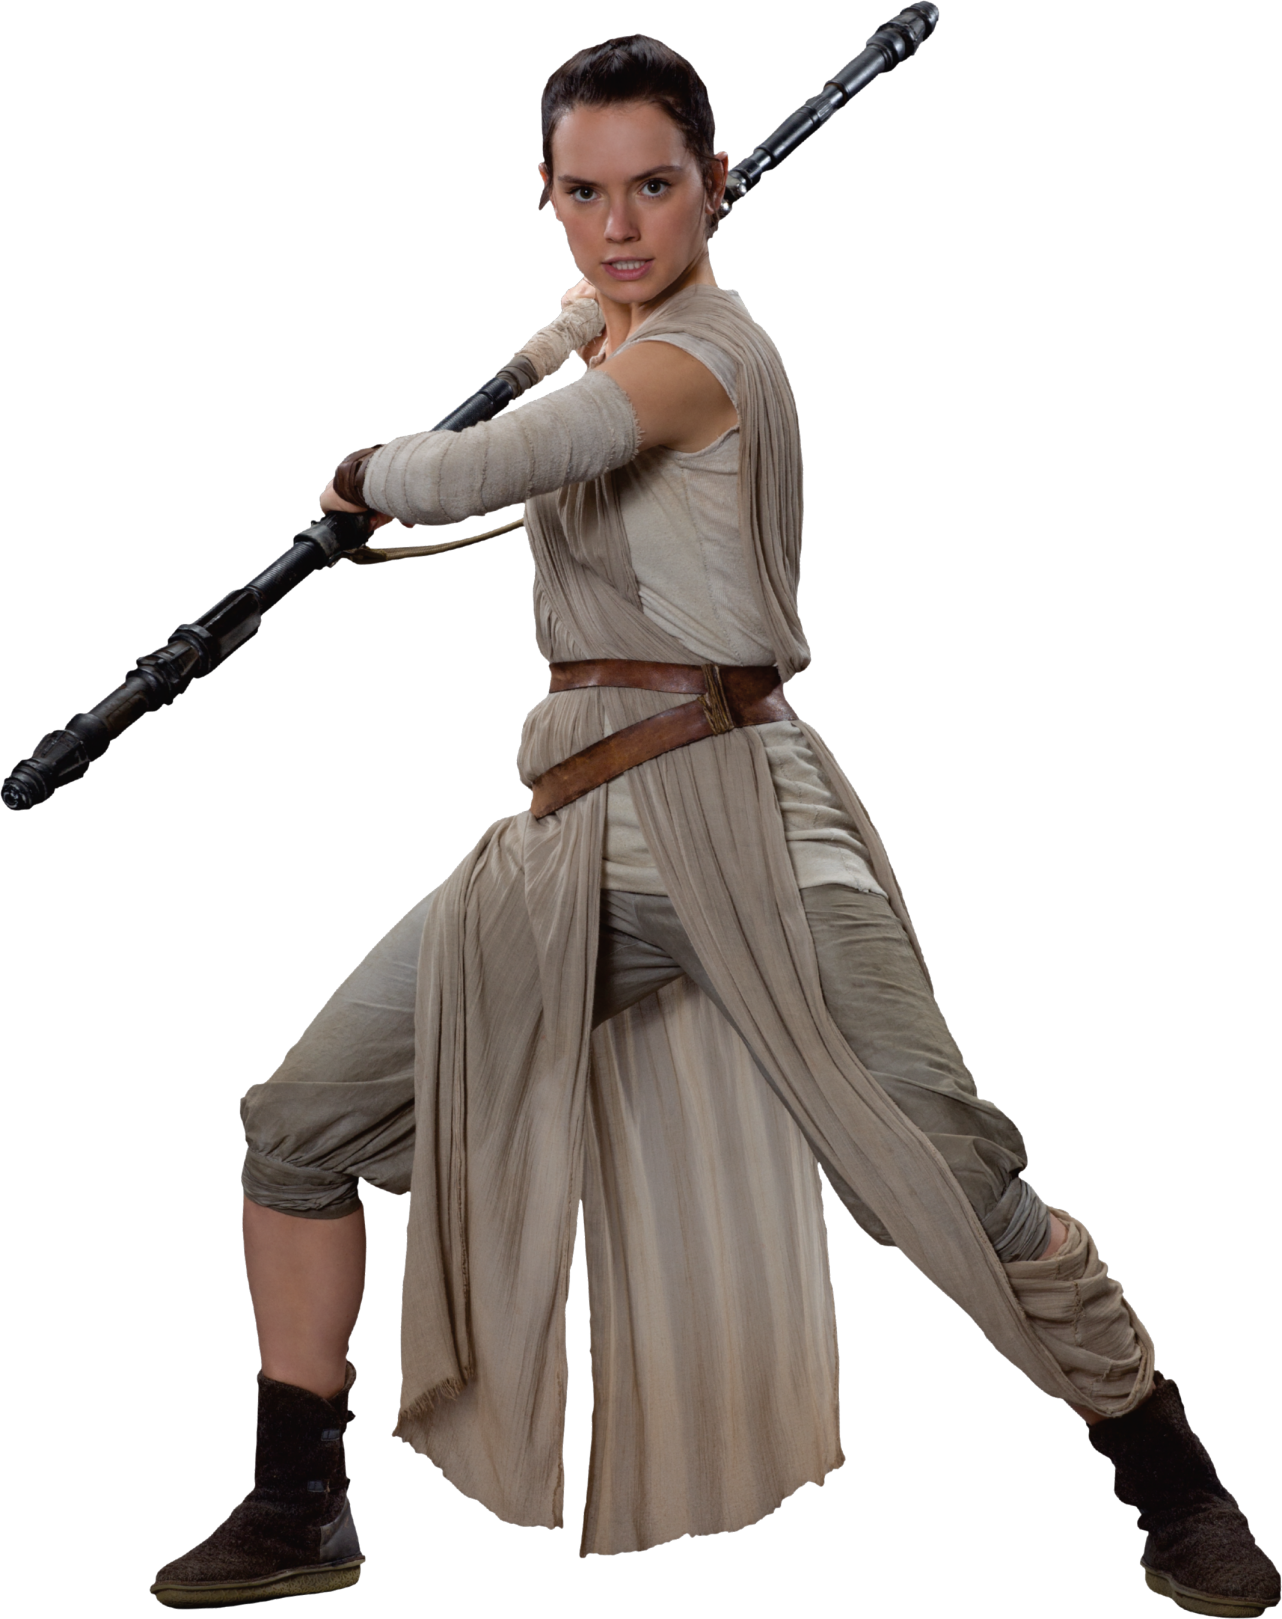 Rey Skywalker Star Wars Ep7 The Force Awakens Characters Cut Out 1282x1619